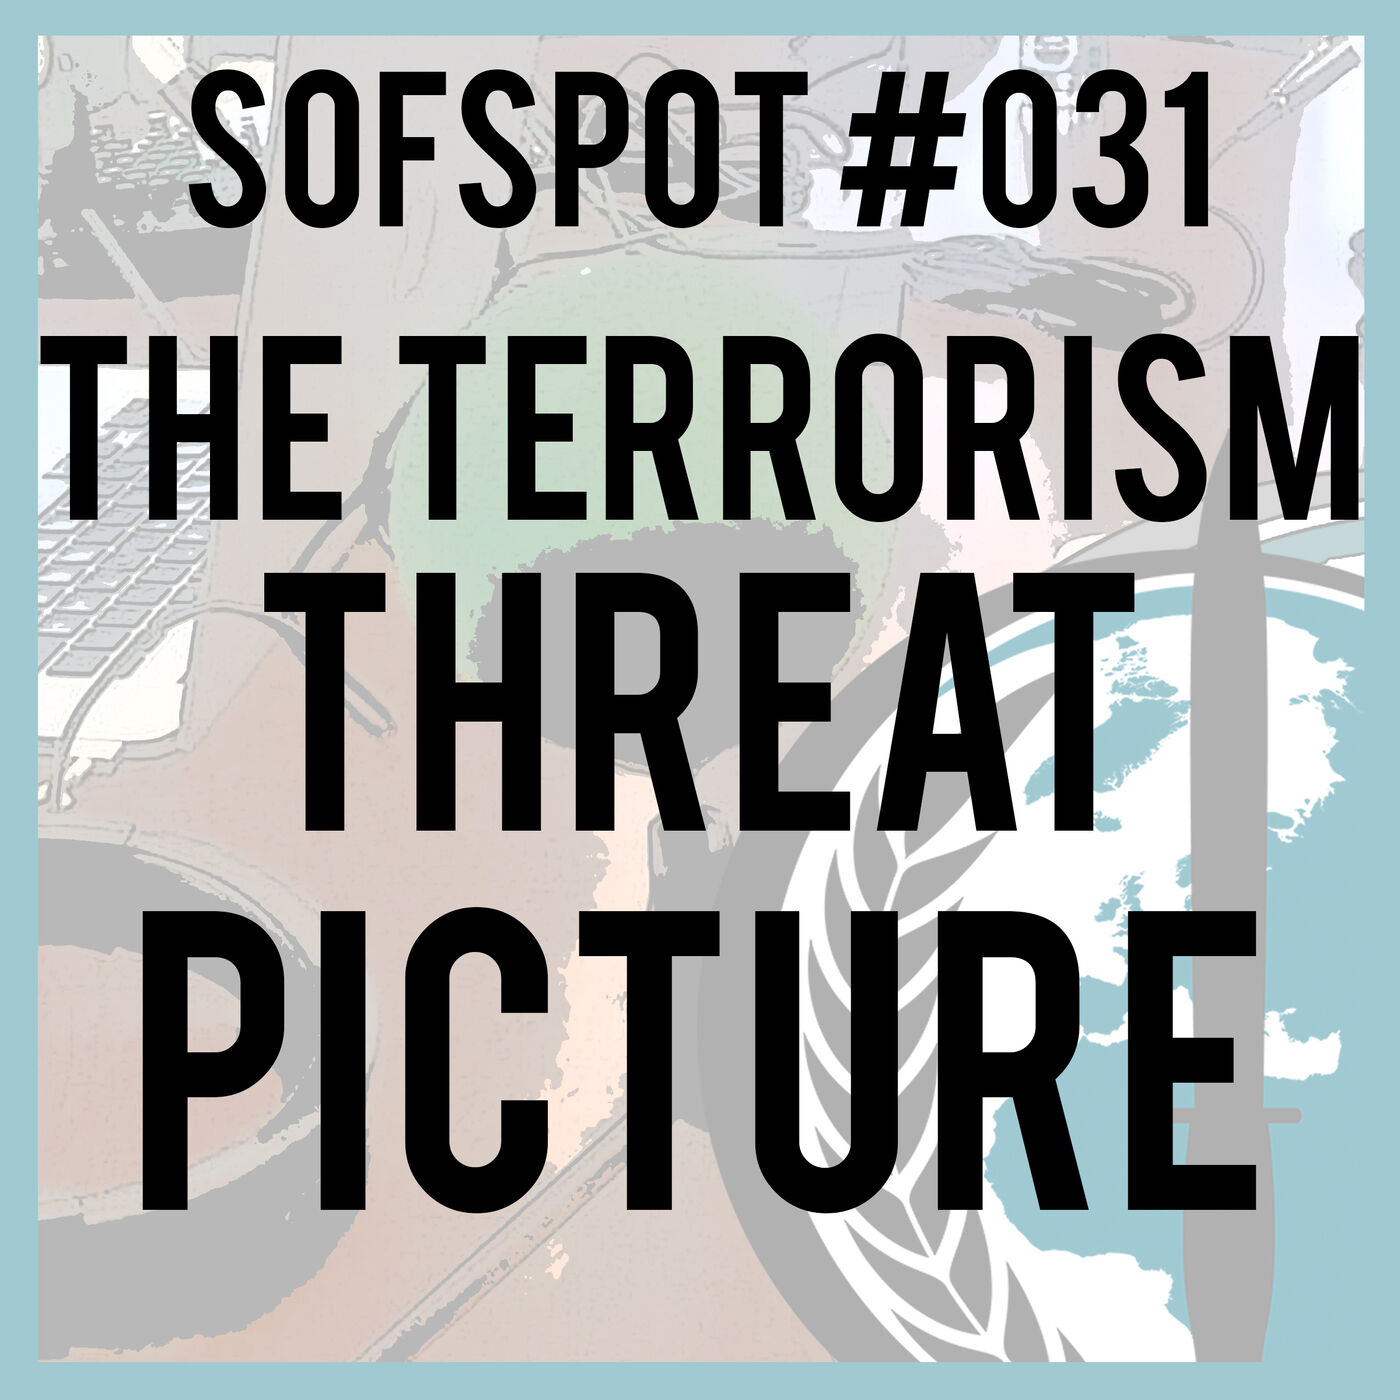 The Terrorism Threat Picture